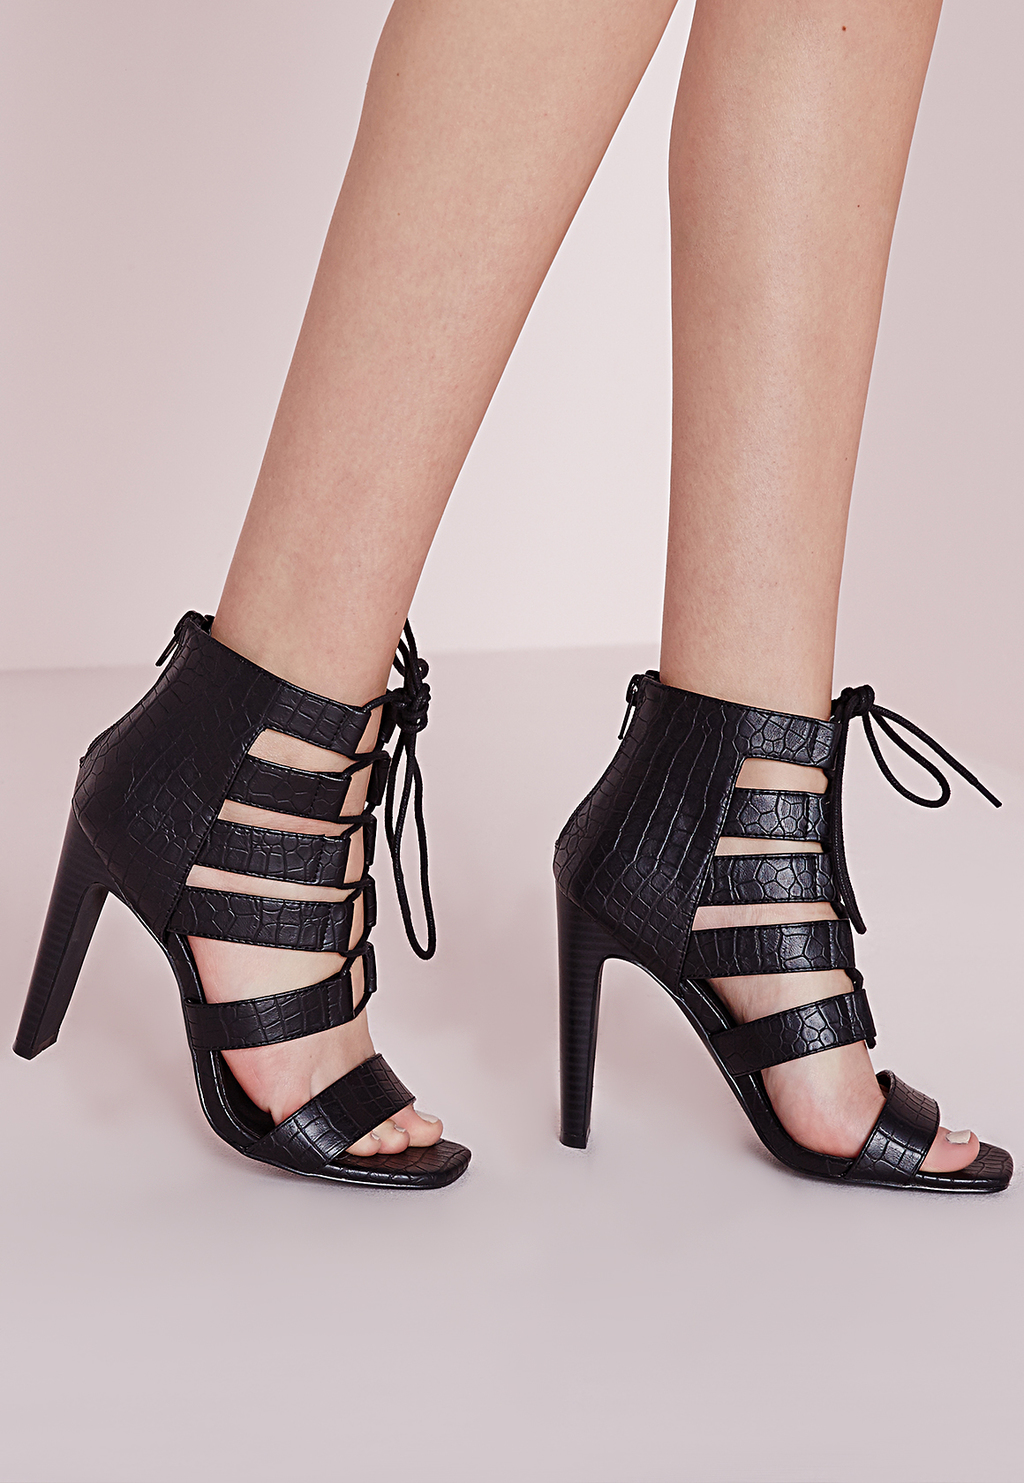 Reptile Lace Up Heeled Sandals Black, Black - predominant colour: black; occasions: evening, occasion; material: faux leather; heel height: high; ankle detail: ankle tie; heel: stiletto; toe: open toe/peeptoe; style: strappy; finish: plain; pattern: plain; season: s/s 2016; wardrobe: event